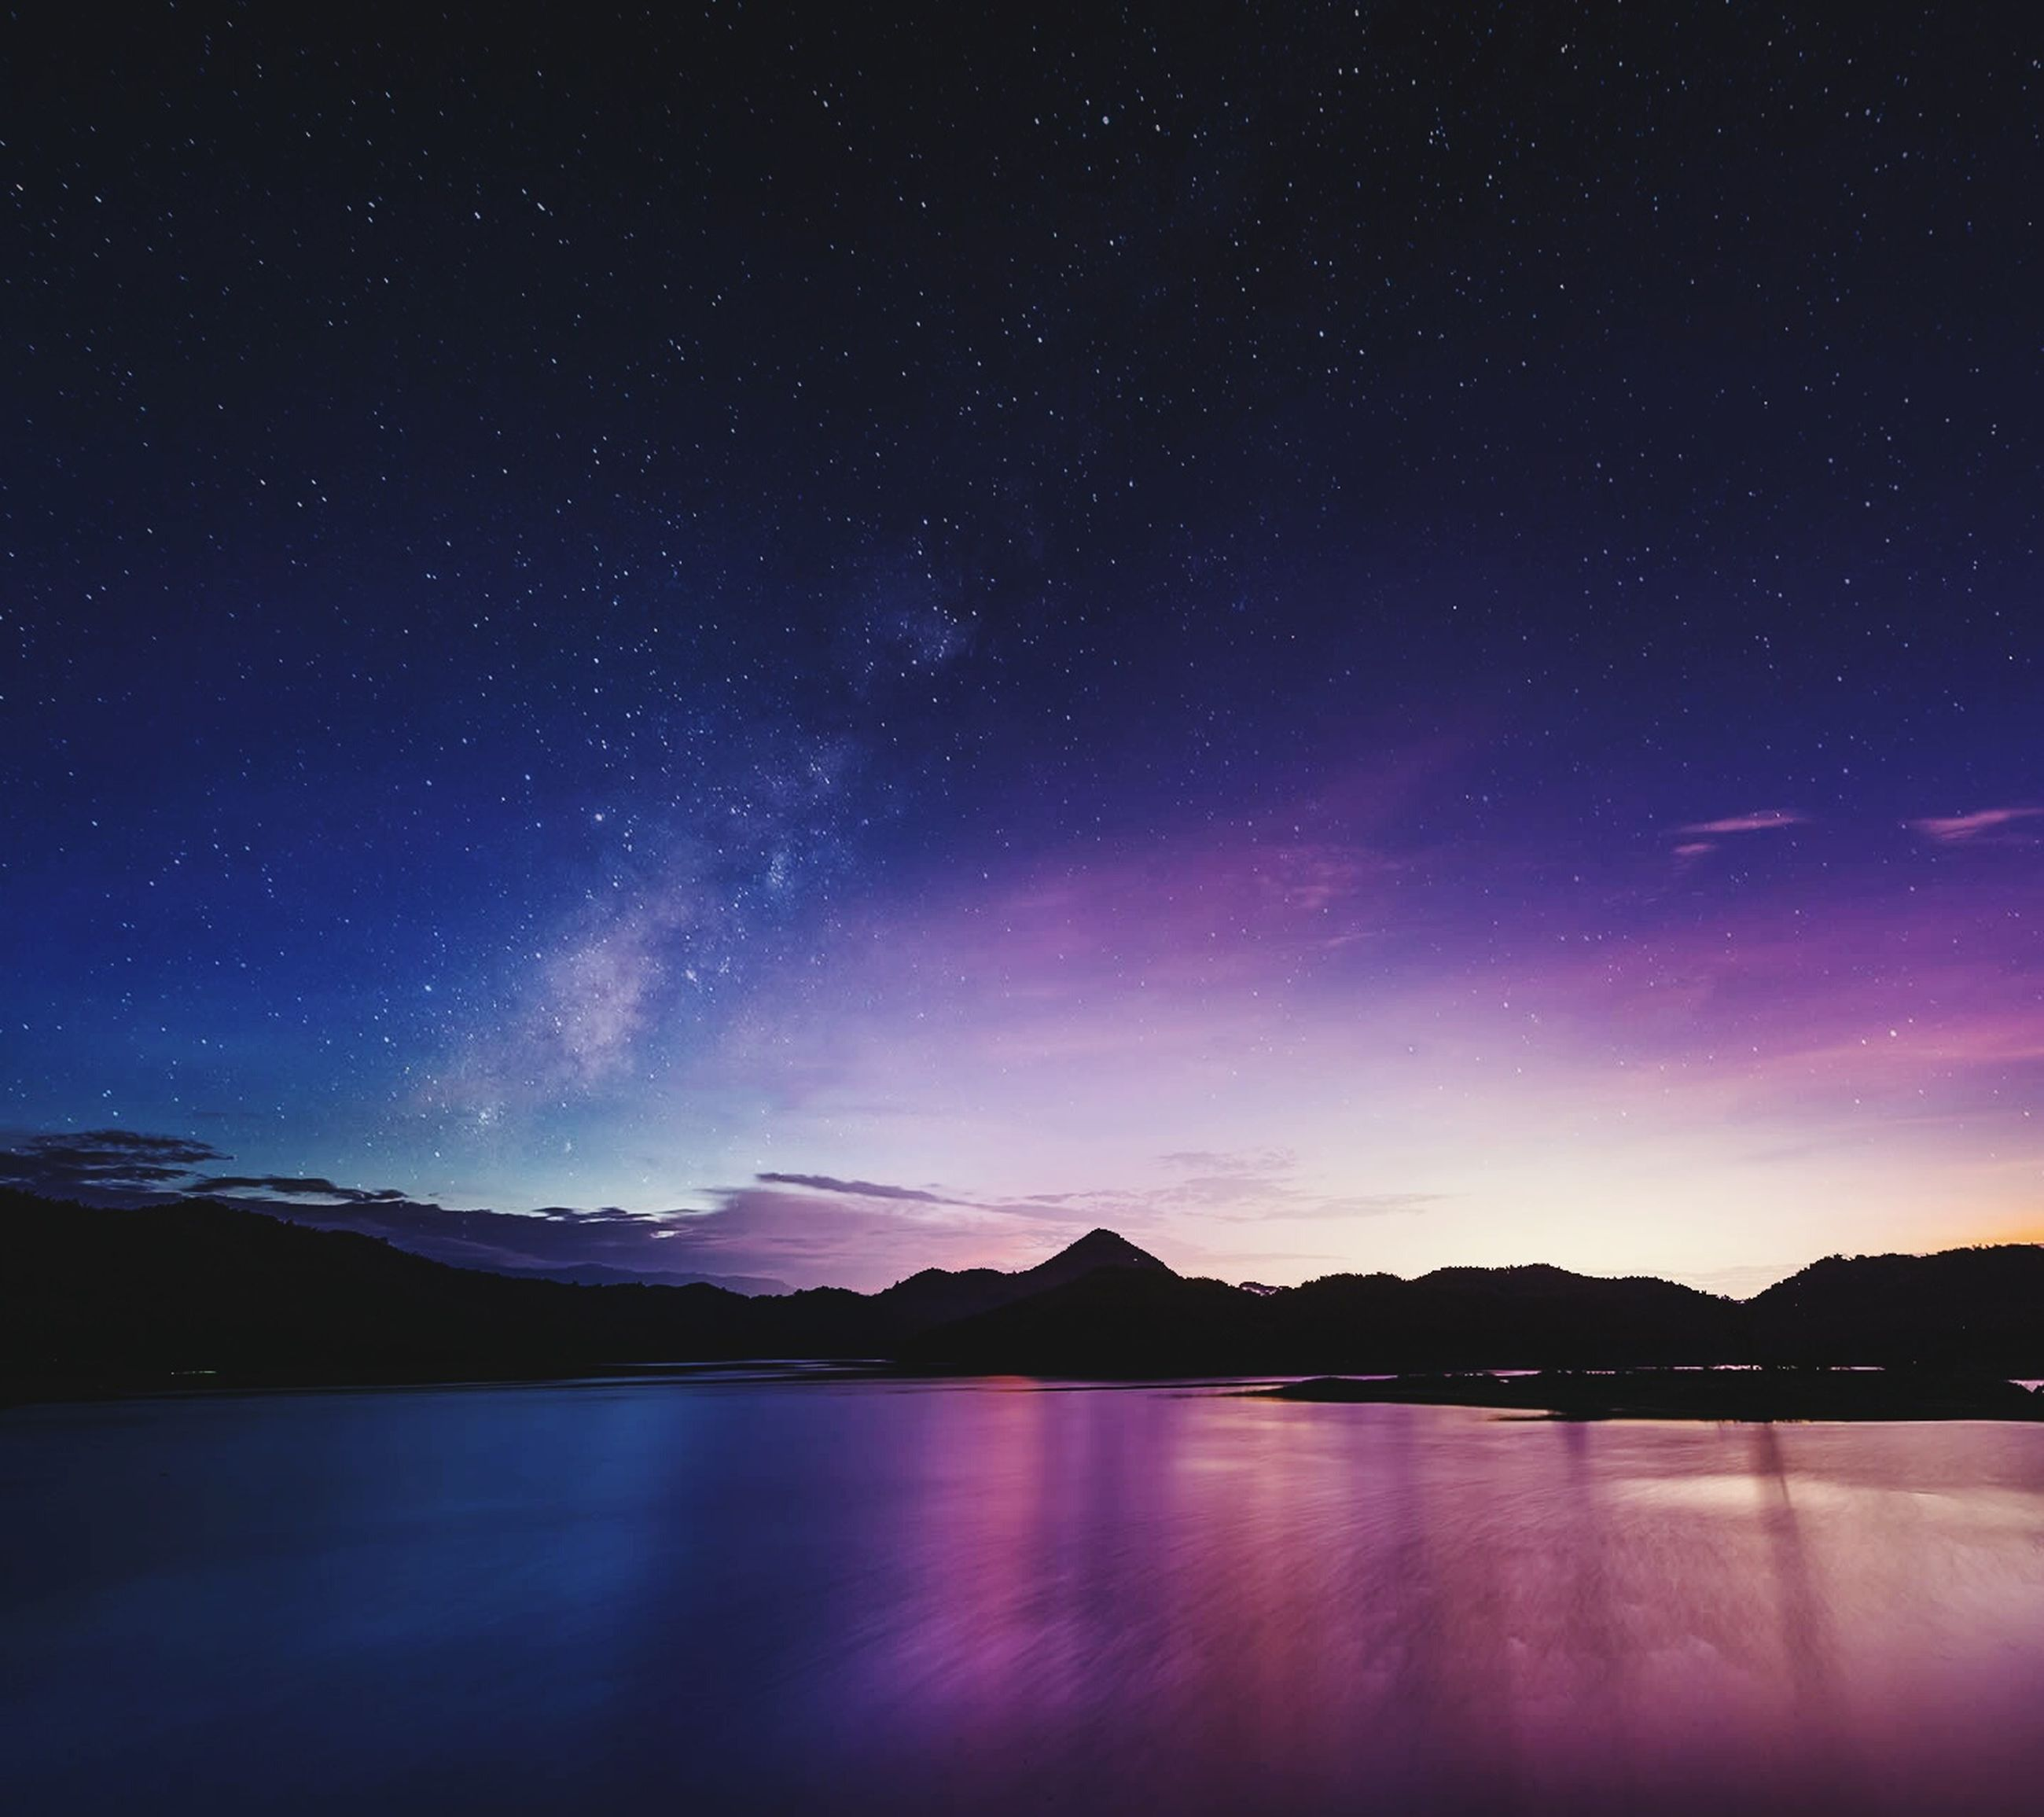 night, tranquil scene, scenics, star - space, tranquility, beauty in nature, star field, astronomy, sky, water, nature, idyllic, galaxy, mountain, majestic, lake, star, space, reflection, waterfront